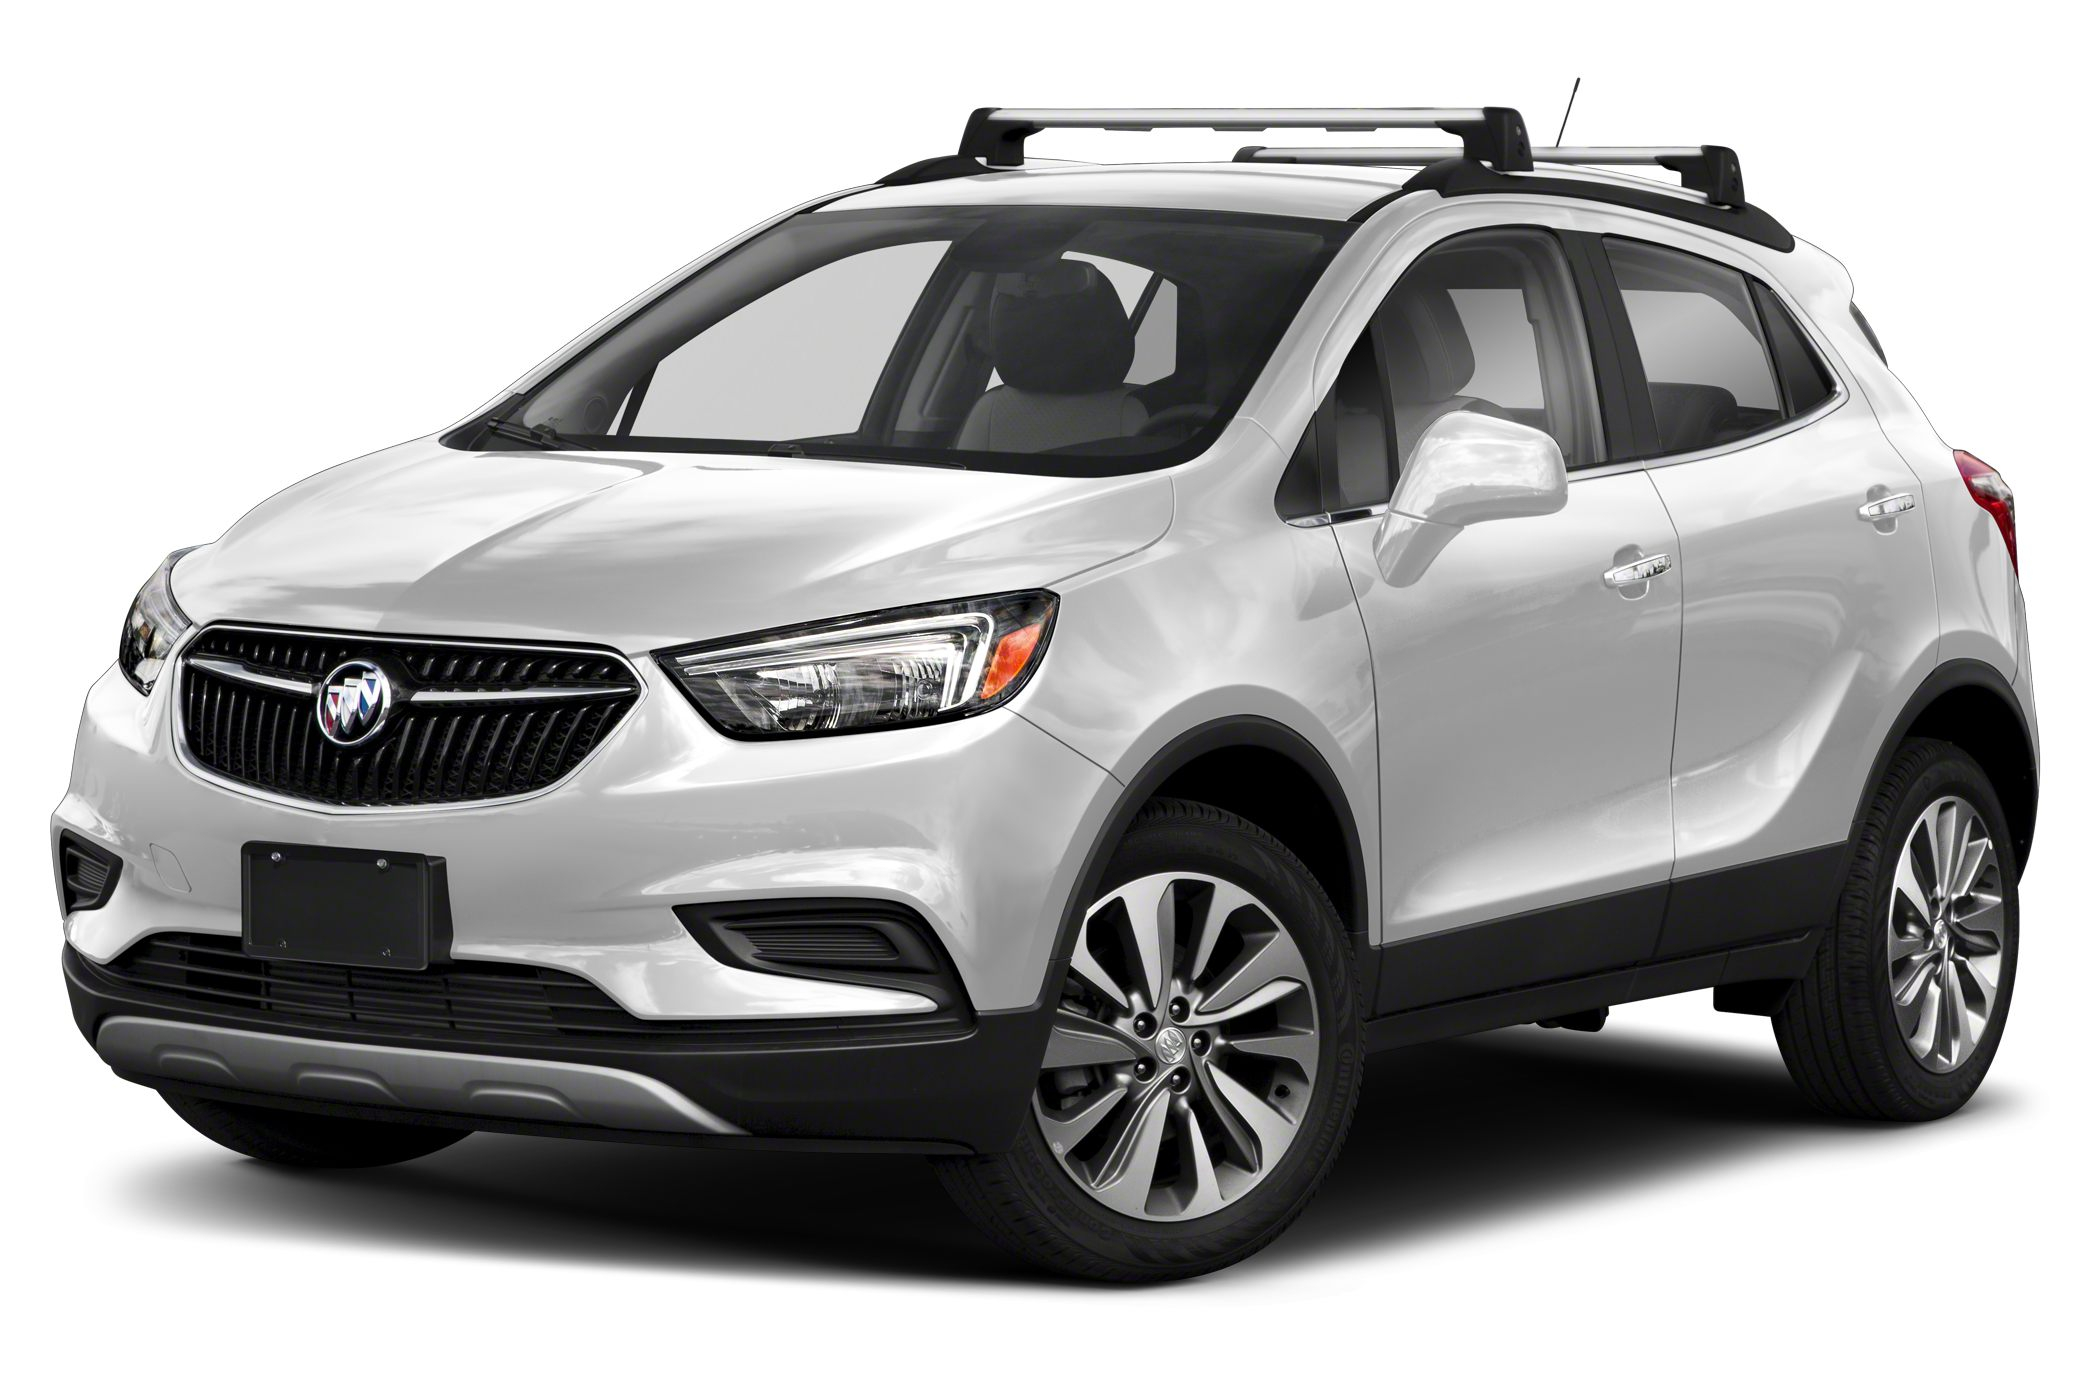 2020 Buick Encore New Car Test Drive New 2021 Buick Encore Transmission, Tire Size, Test Drive